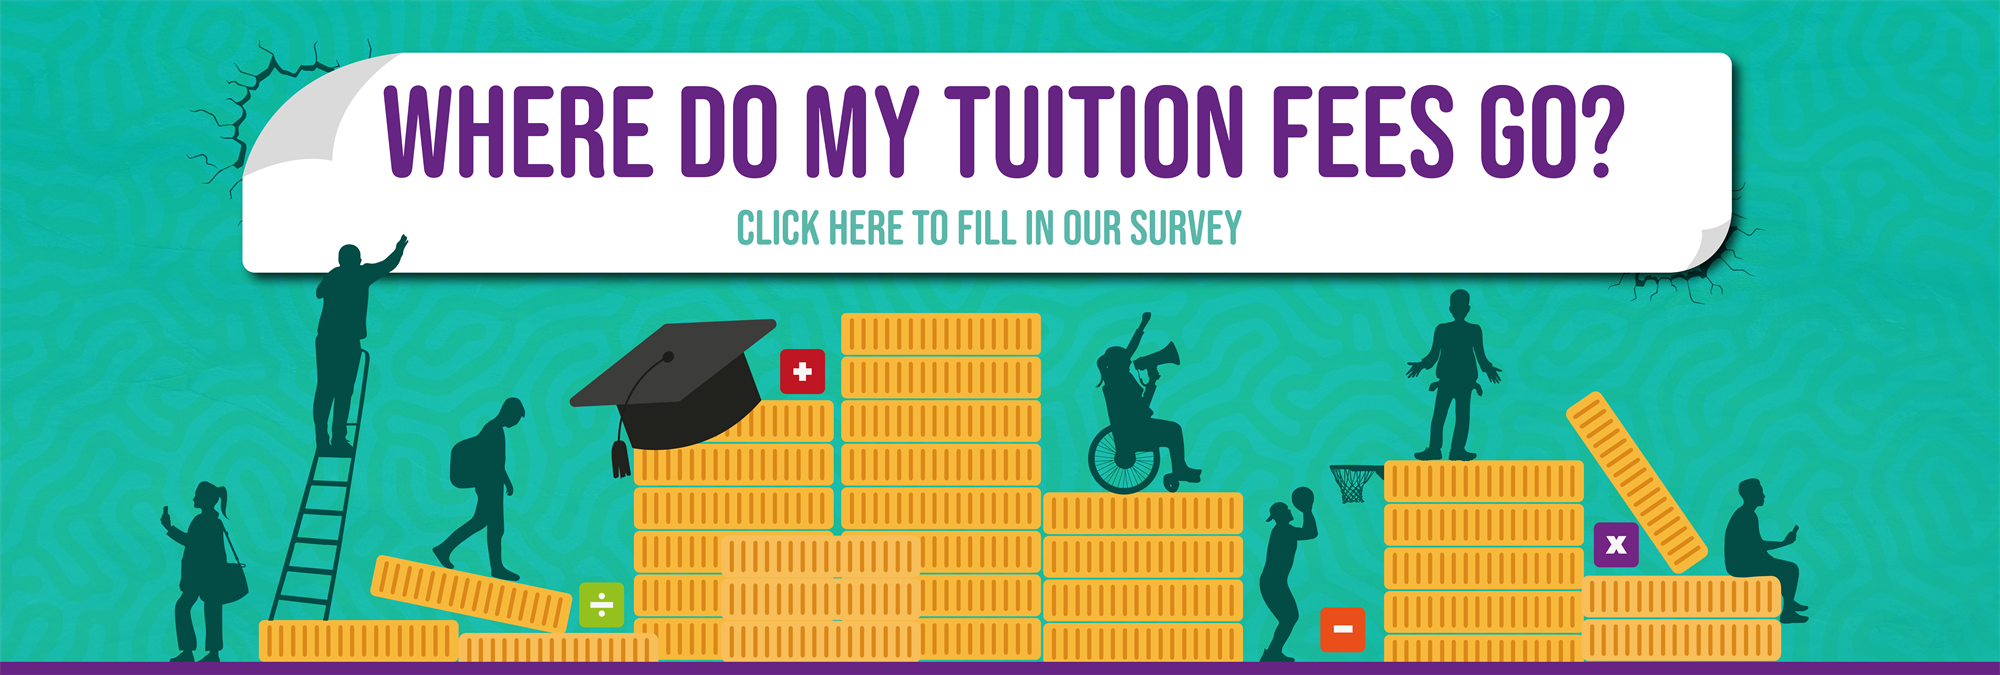 Where do my tuition fees go? Click here to fill in our survey.